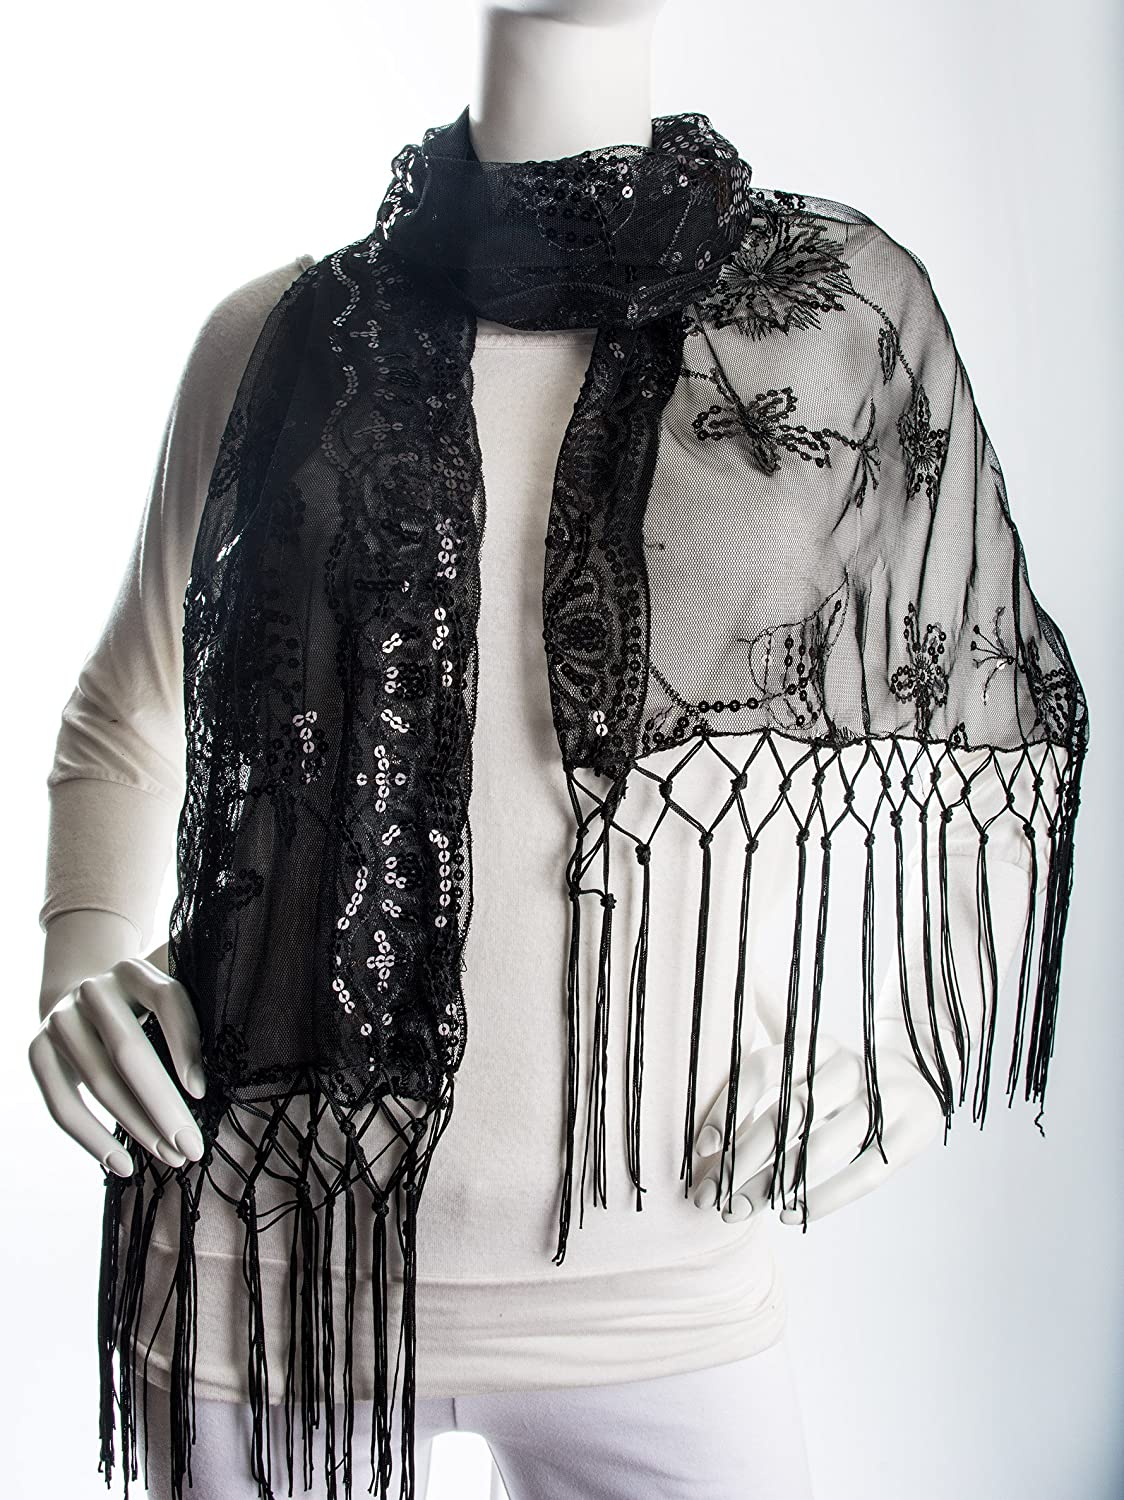 Vintage Scarves- New in the 1920s to 1960s Styles  Marguerite Shawl Sequin evening sheer wrap with knotted fringe ends $18.95 AT vintagedancer.com